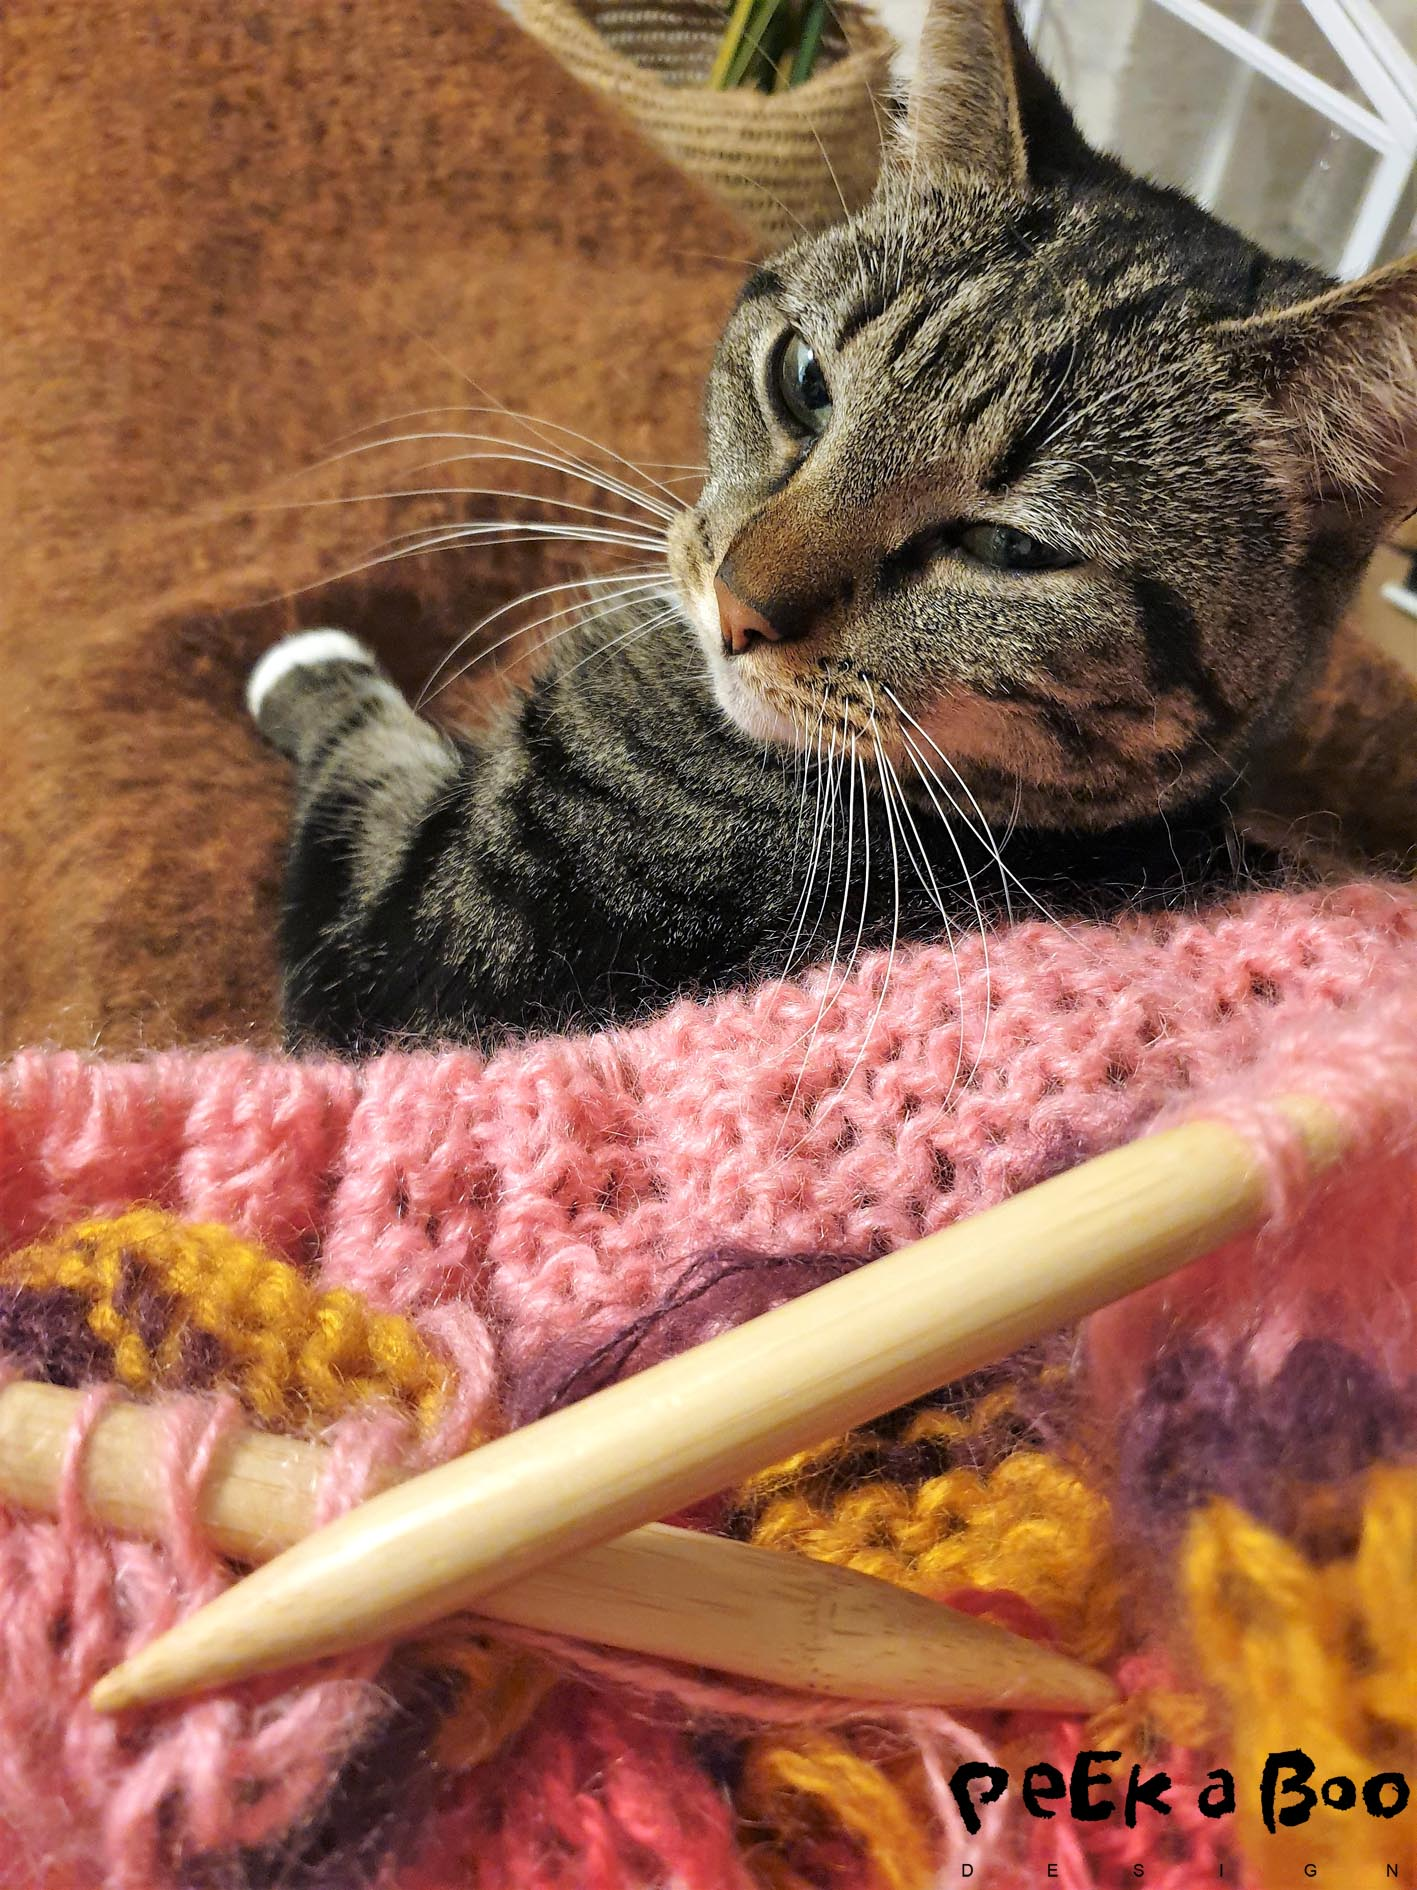 cozy times knitting and cuddling with my cat, Luna.